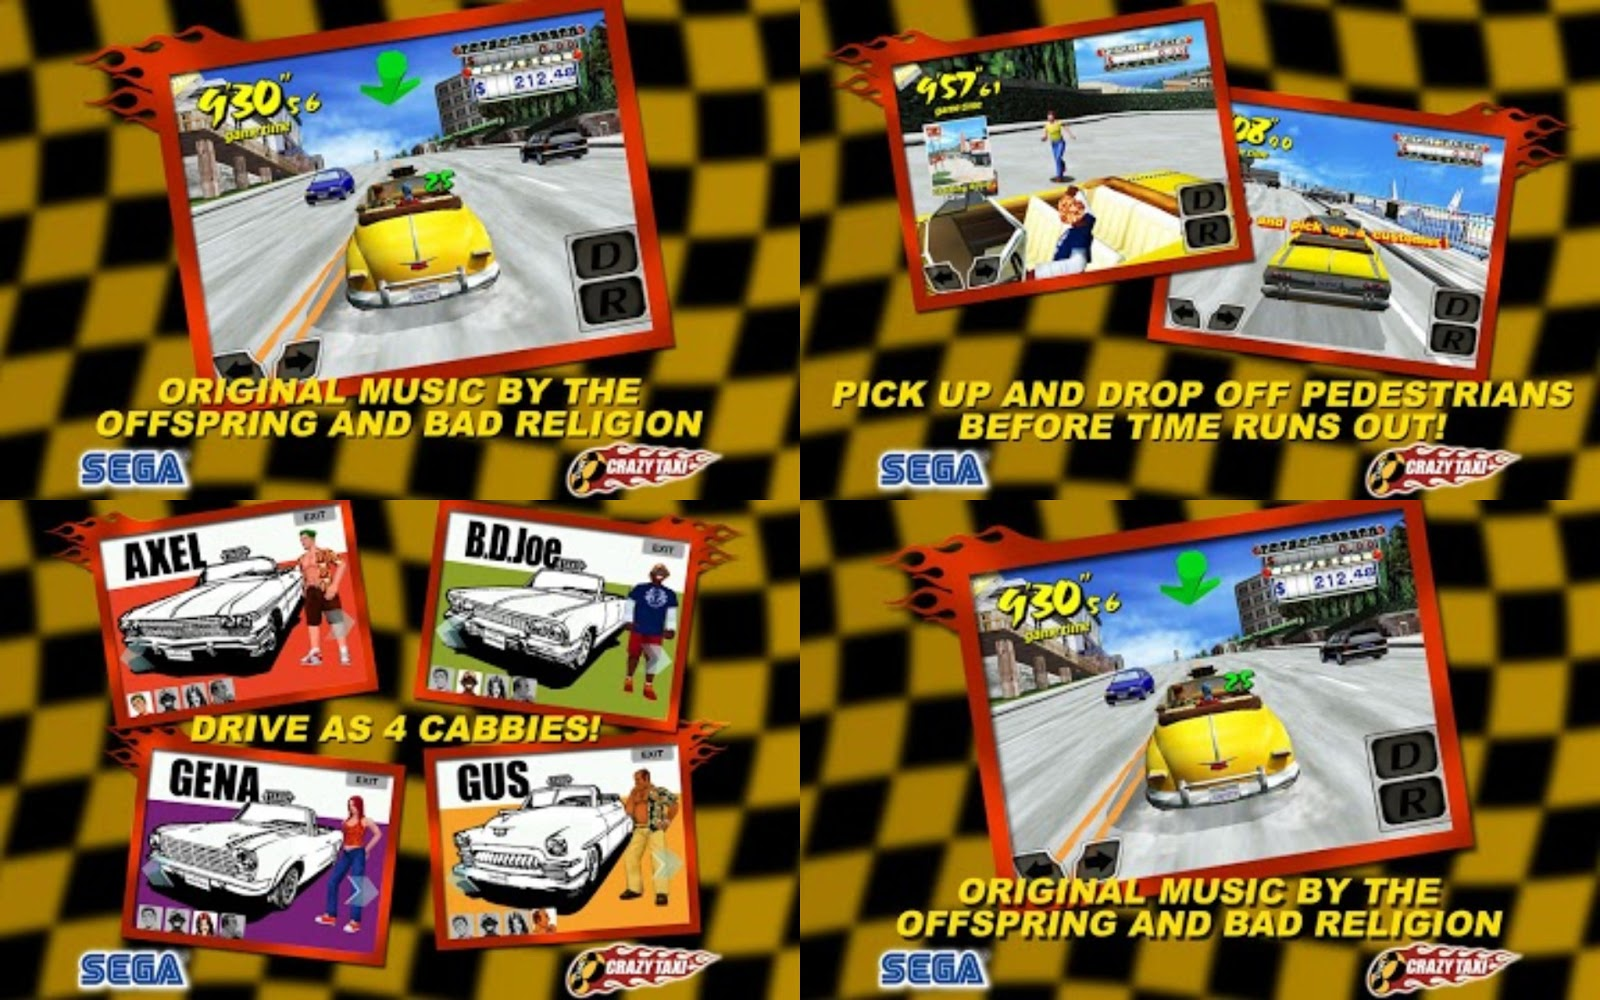 Download Game Android Crazy Taxi Mod Apk - shelinoa